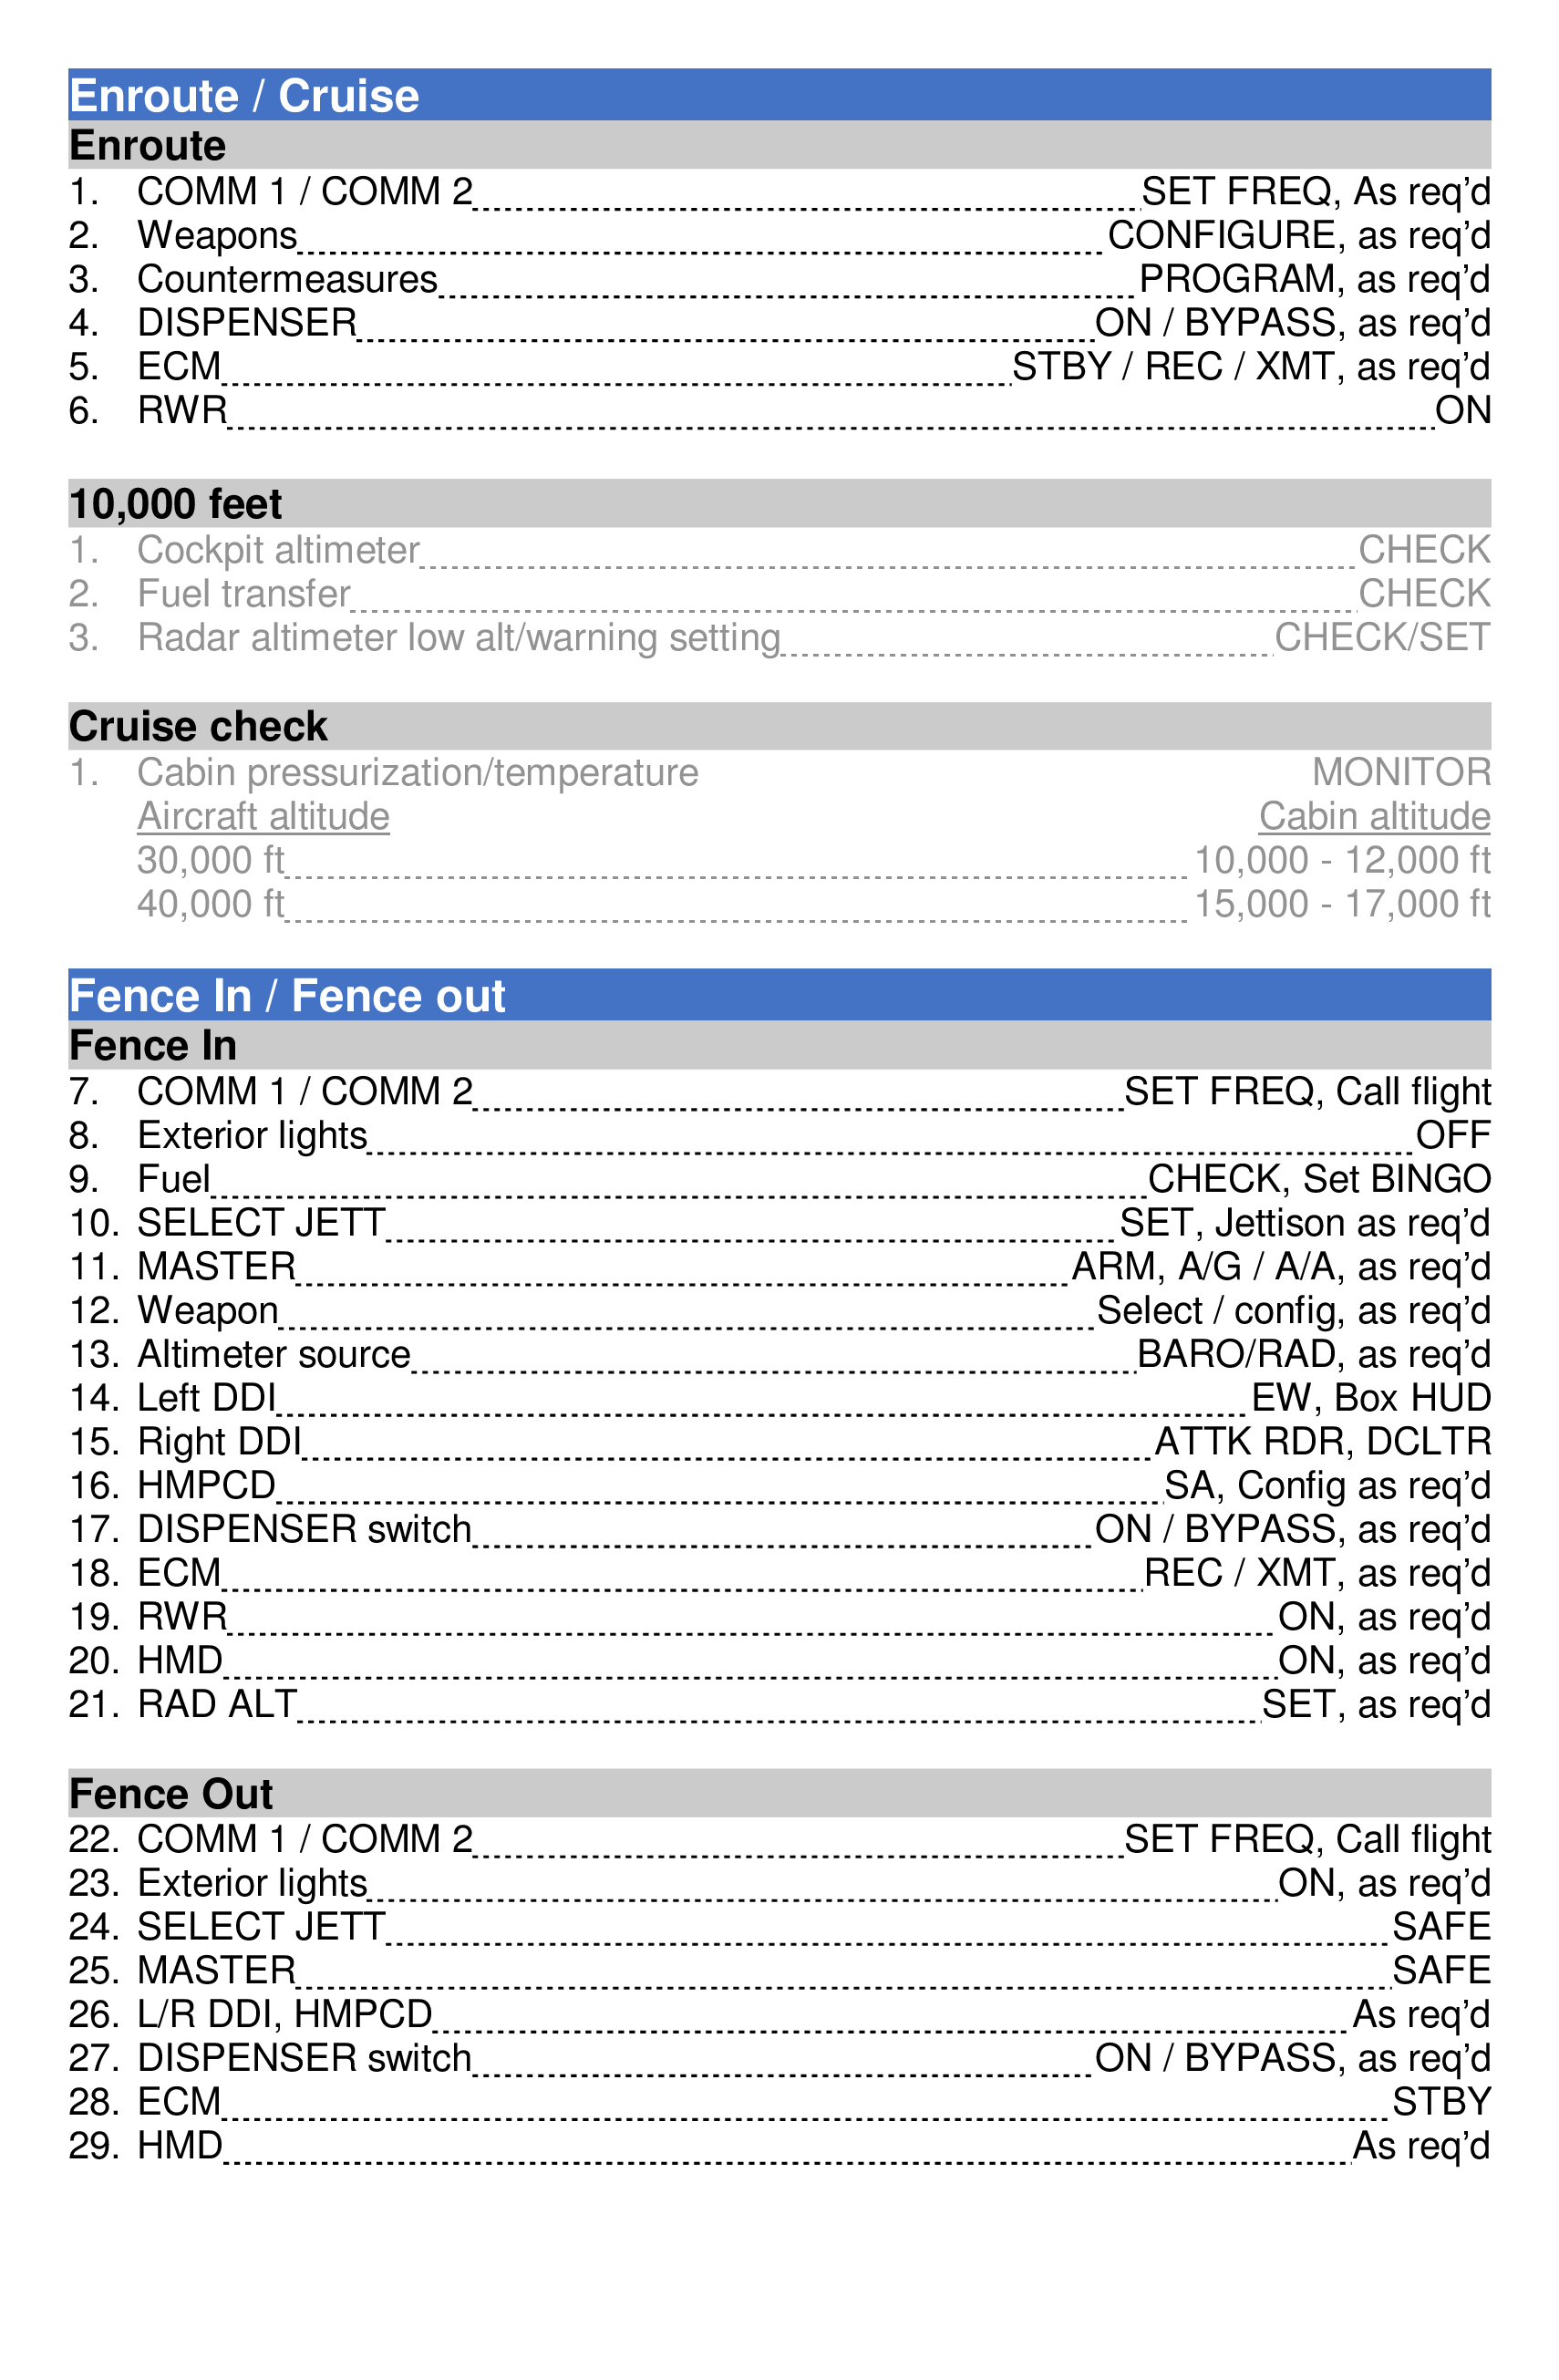 ColdFront's F/A-18 Checklists (PDF and PNGs)